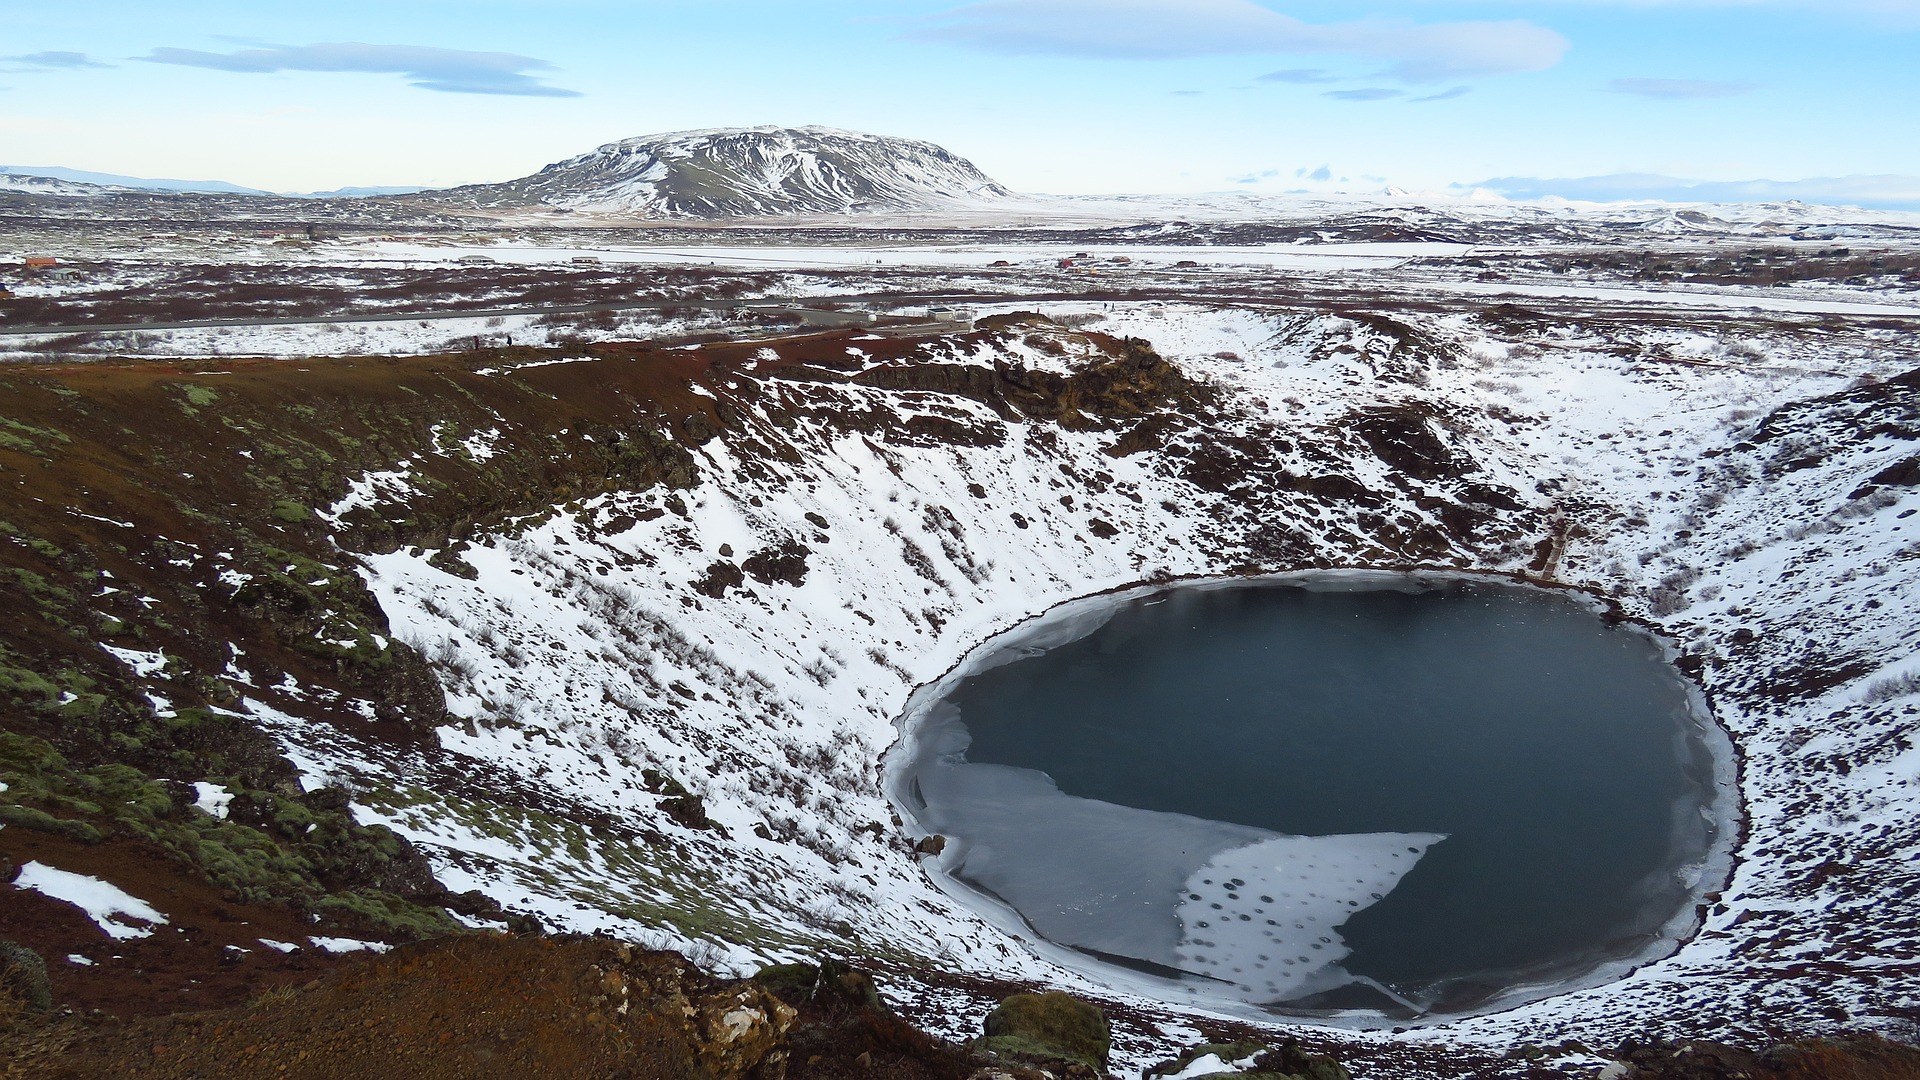 Kerid crater in Iceland